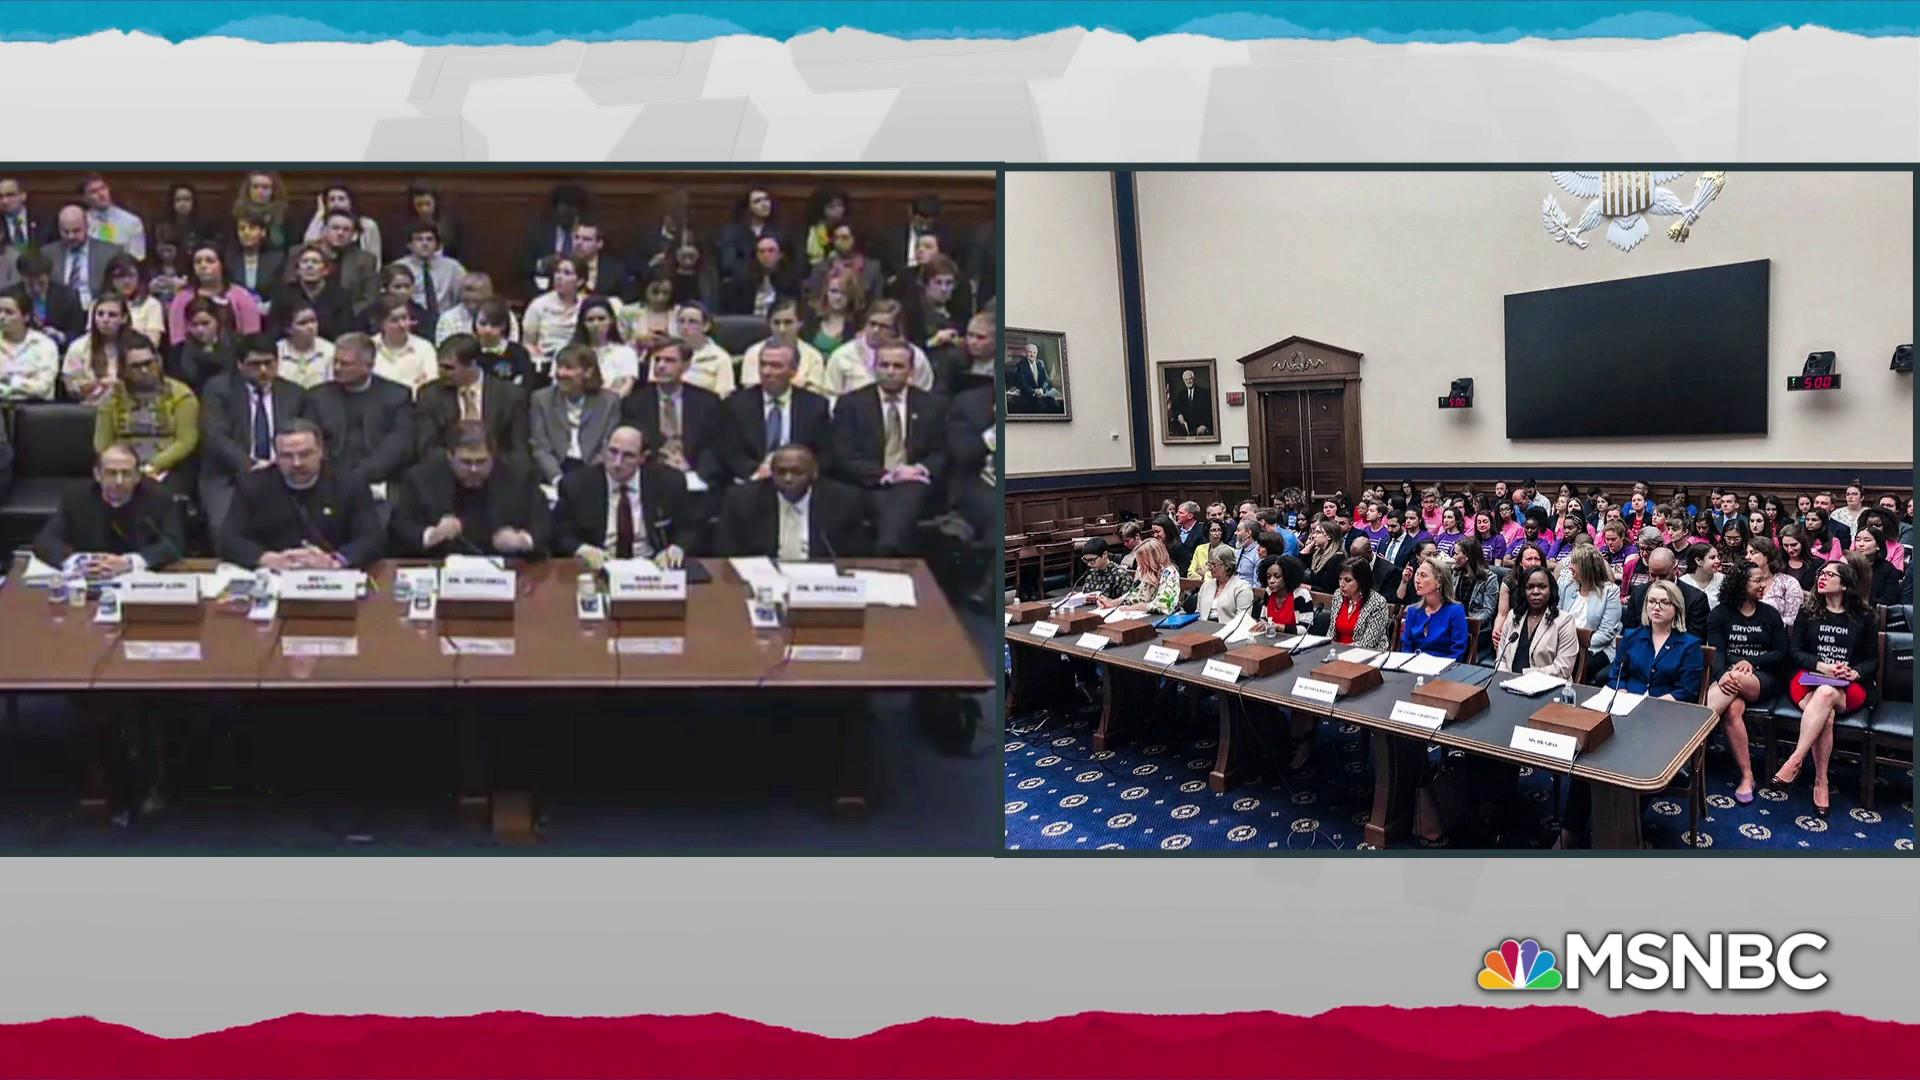 Photos tell a tale of two hearings on women's reproductive health